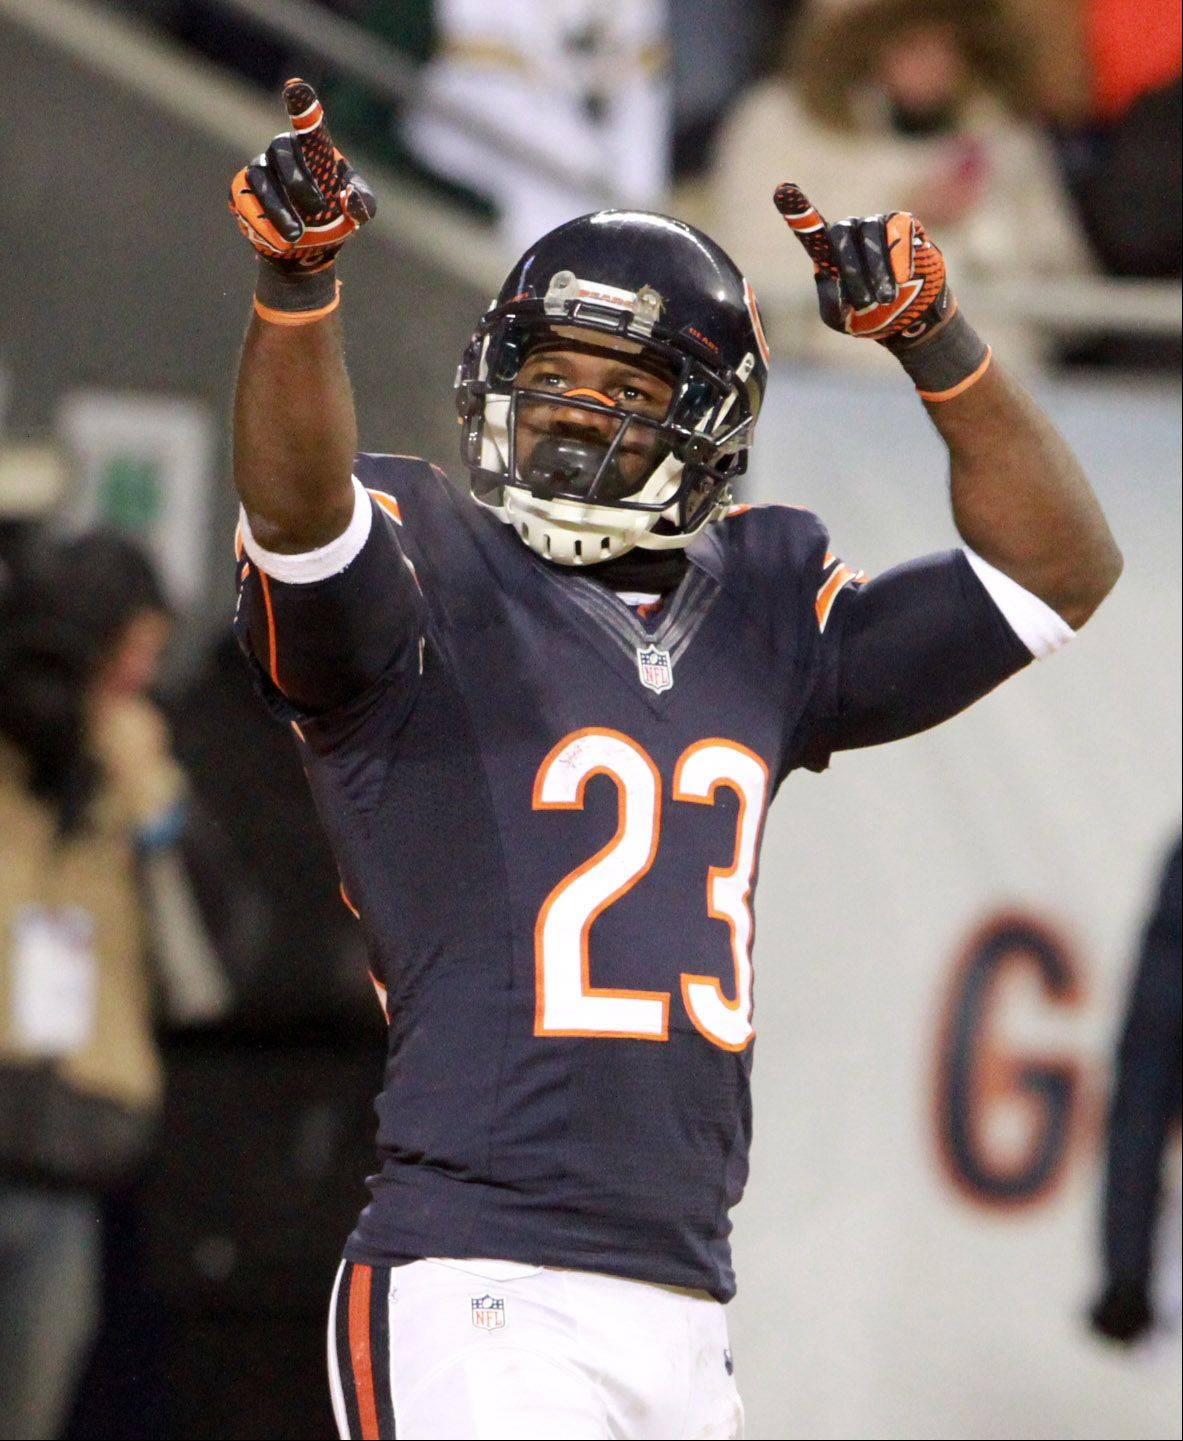 Bears kick-returner extraordinaire Devin Hester says that Bears fans want him back next season.